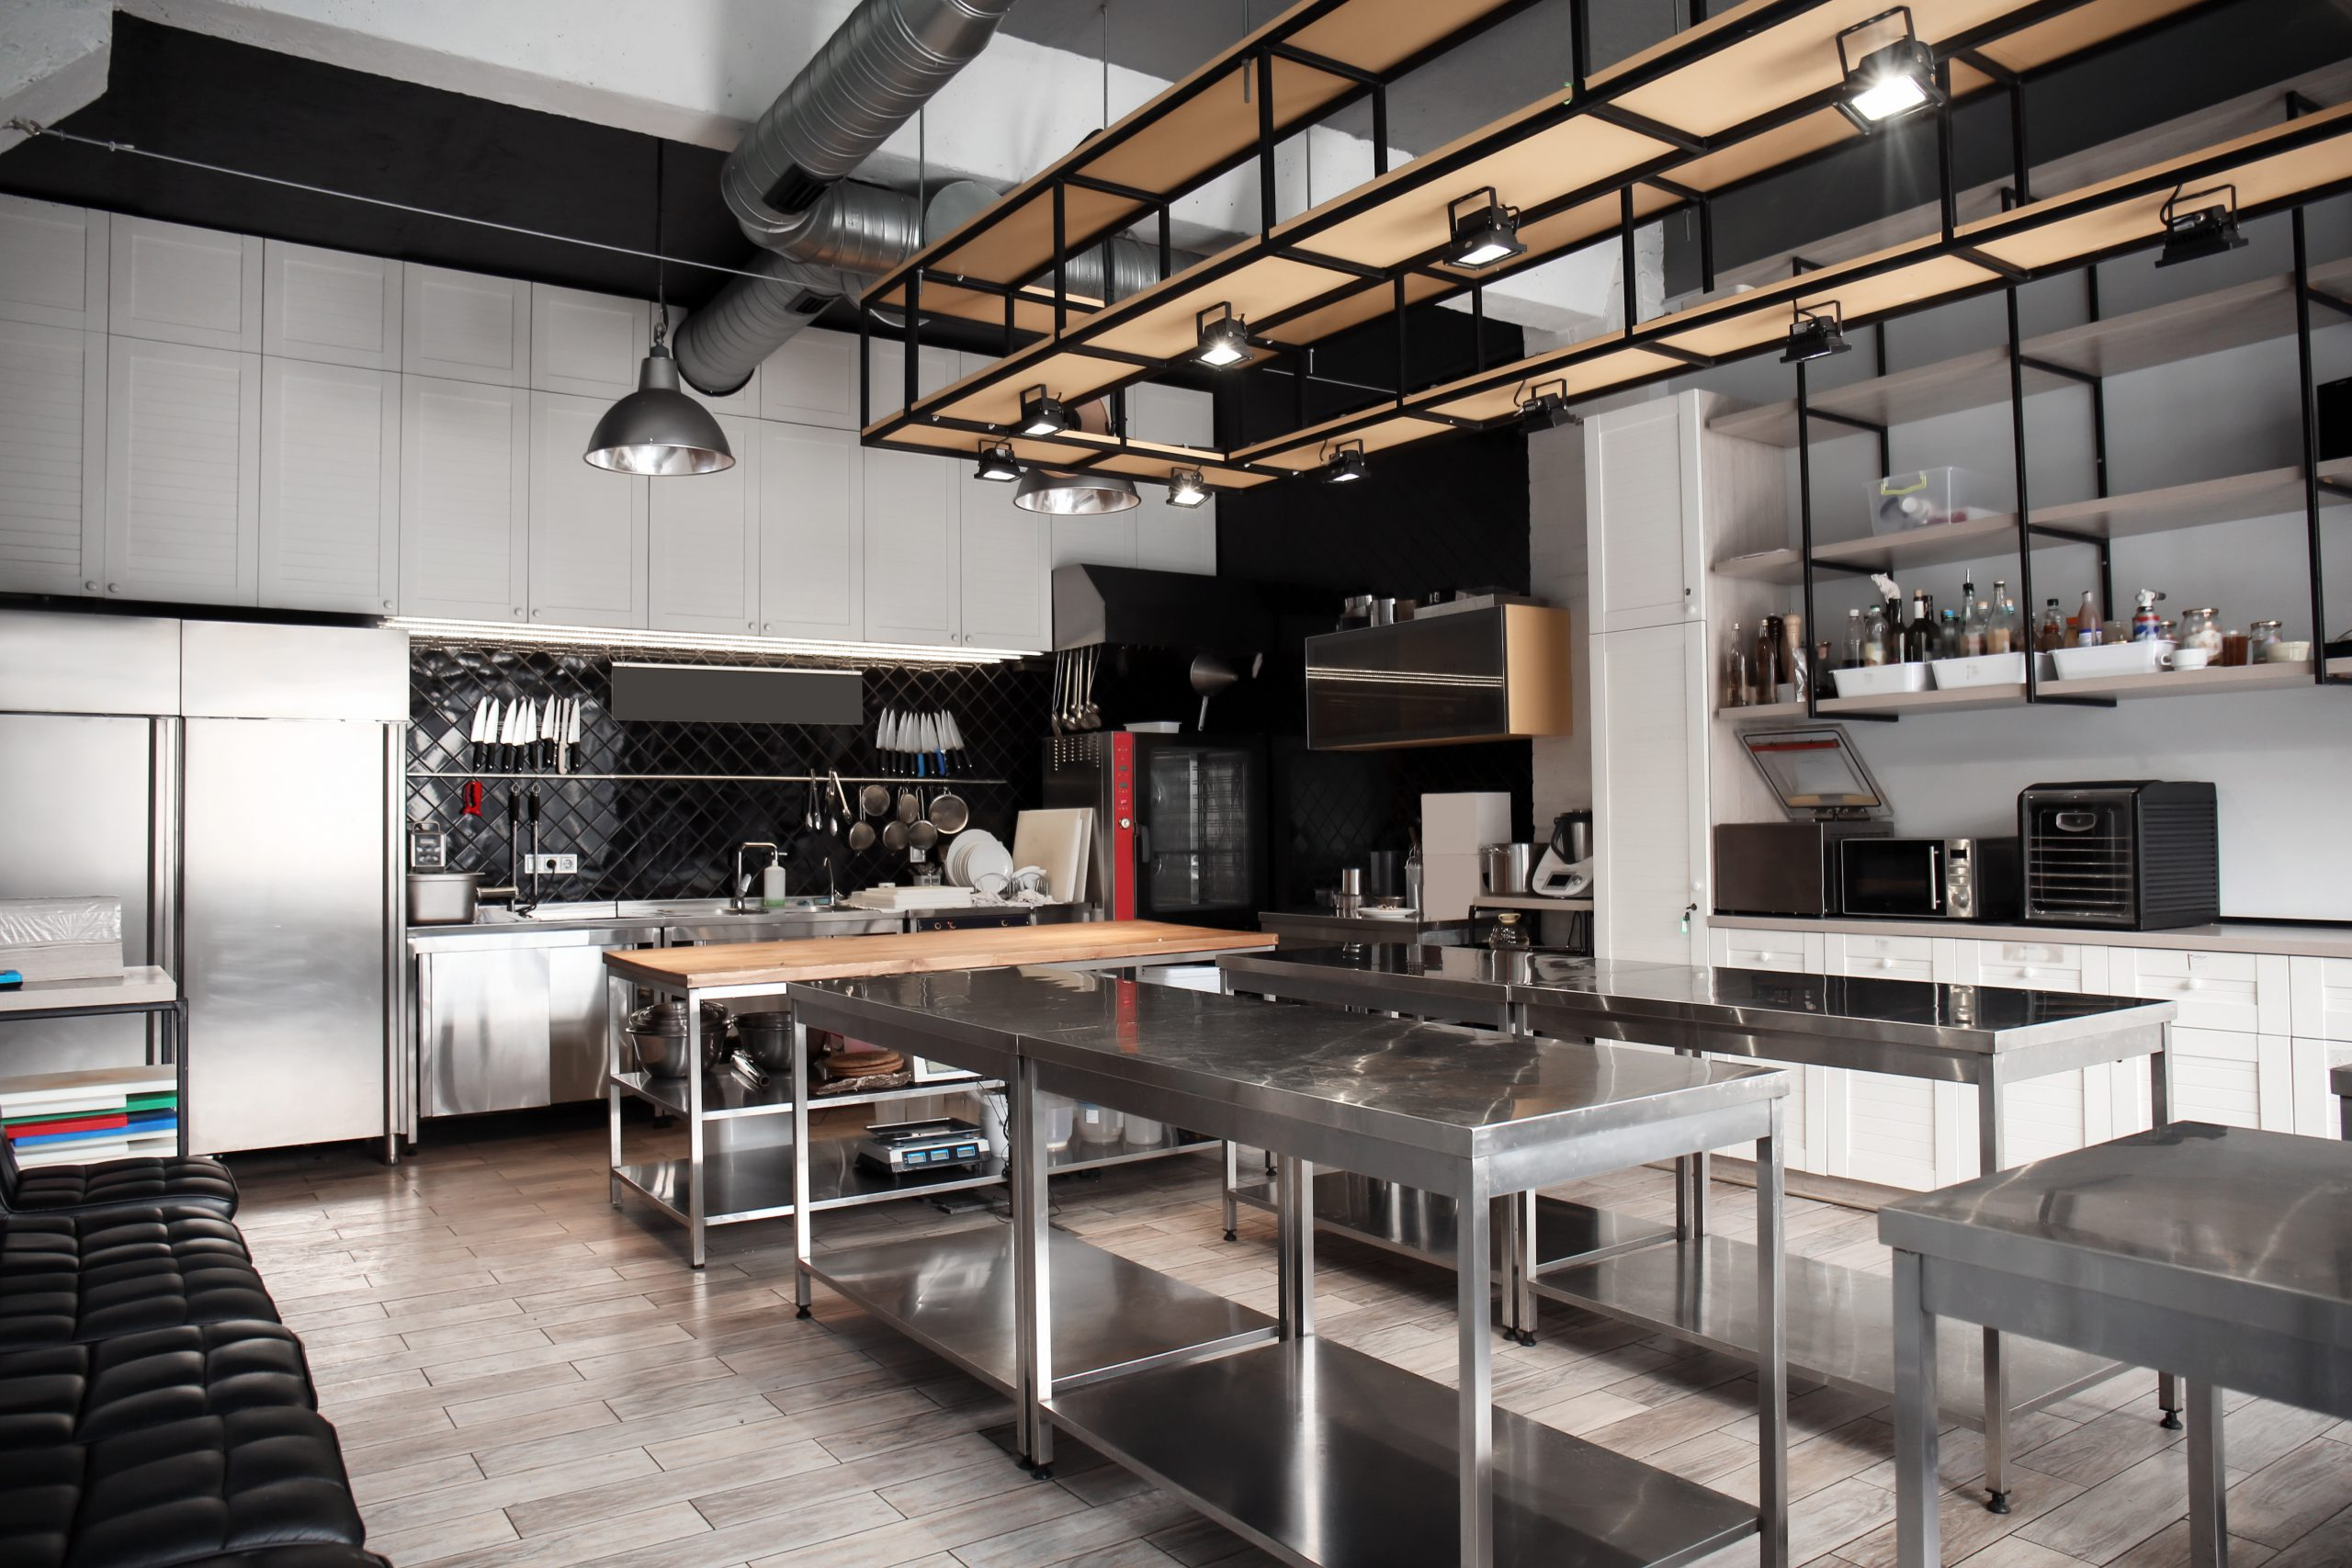 Interior of professional restaurant kitchen layout